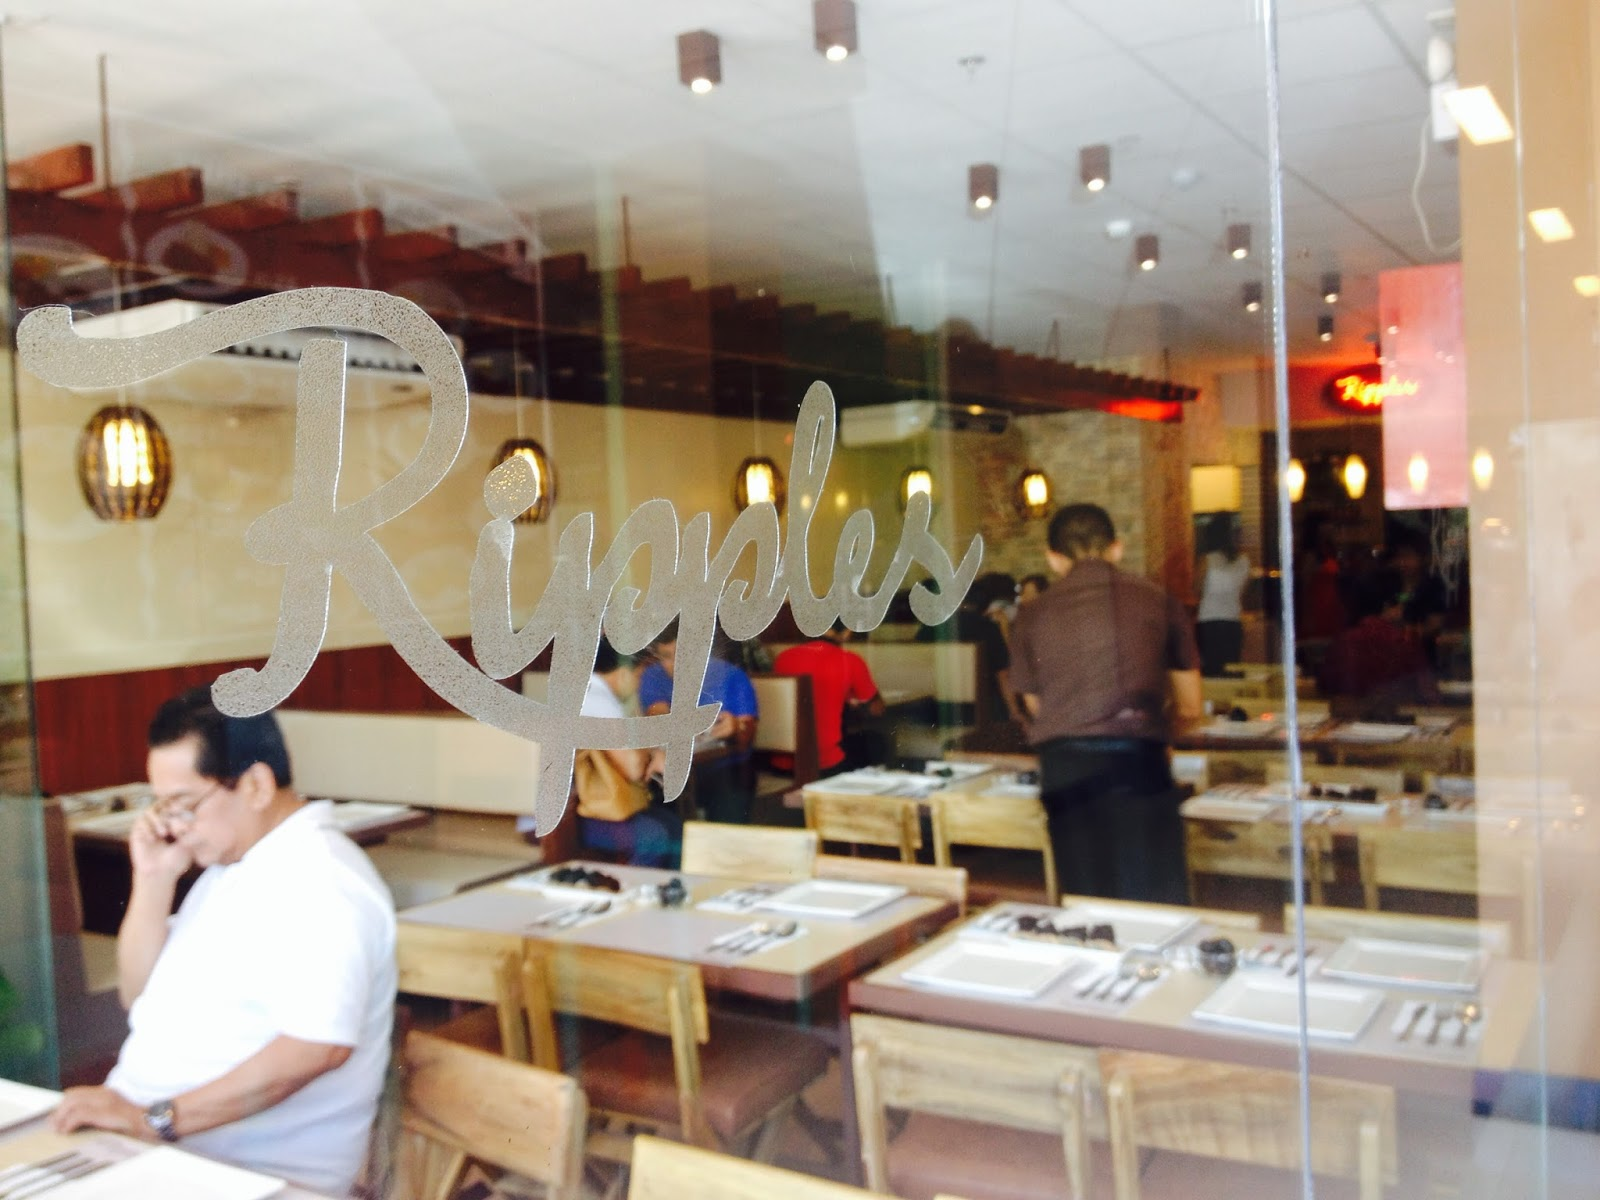 review ripples diner and cafe cdo - Glass Front Cafe 2015